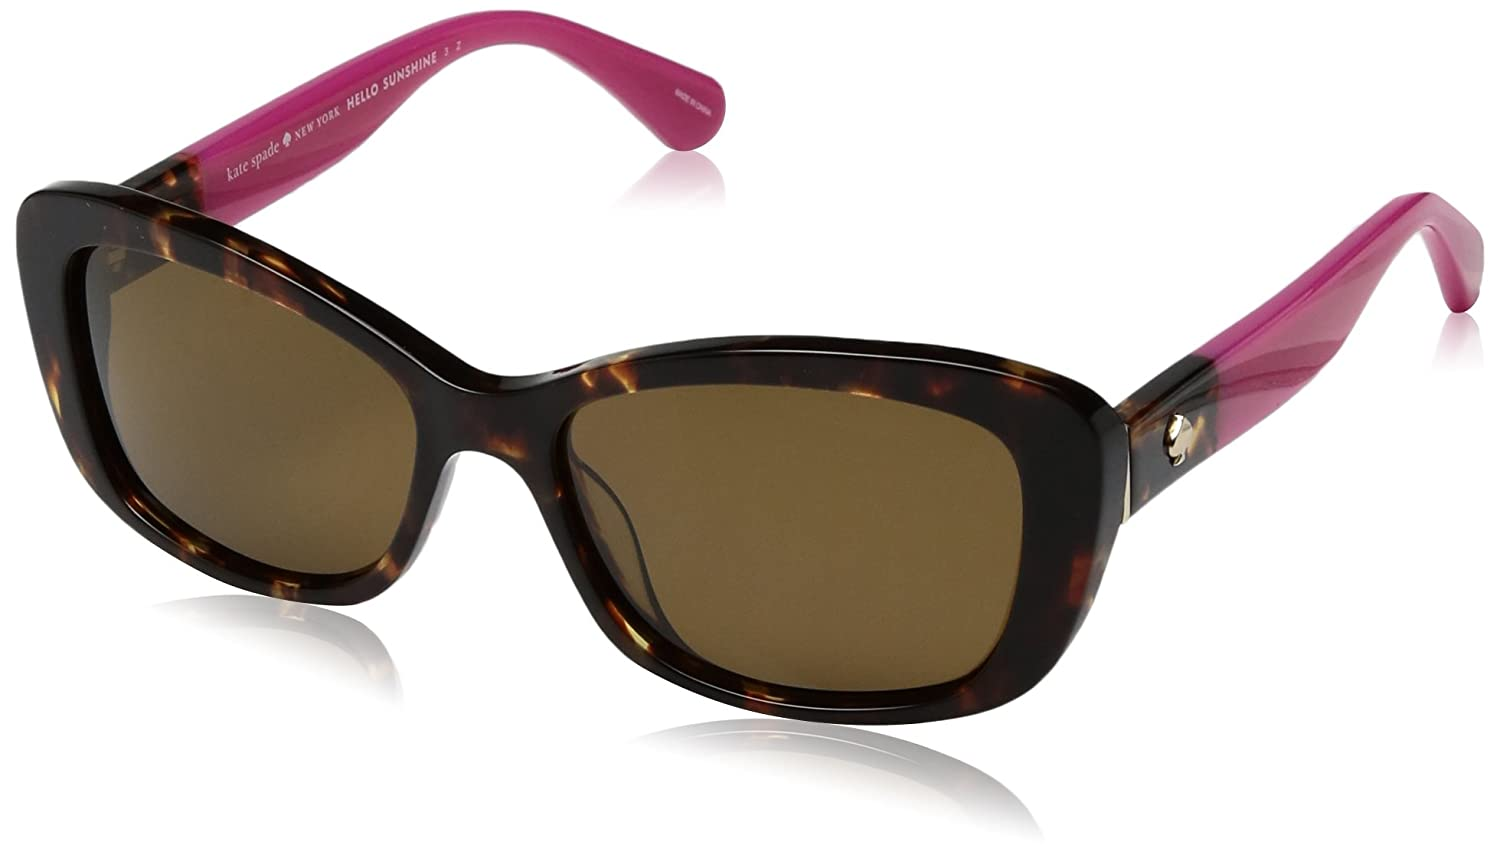 e406fb1ff5fbd Amazon.com  Kate Spade Women s Claretta p s Polarized Rectangular Sunglasses